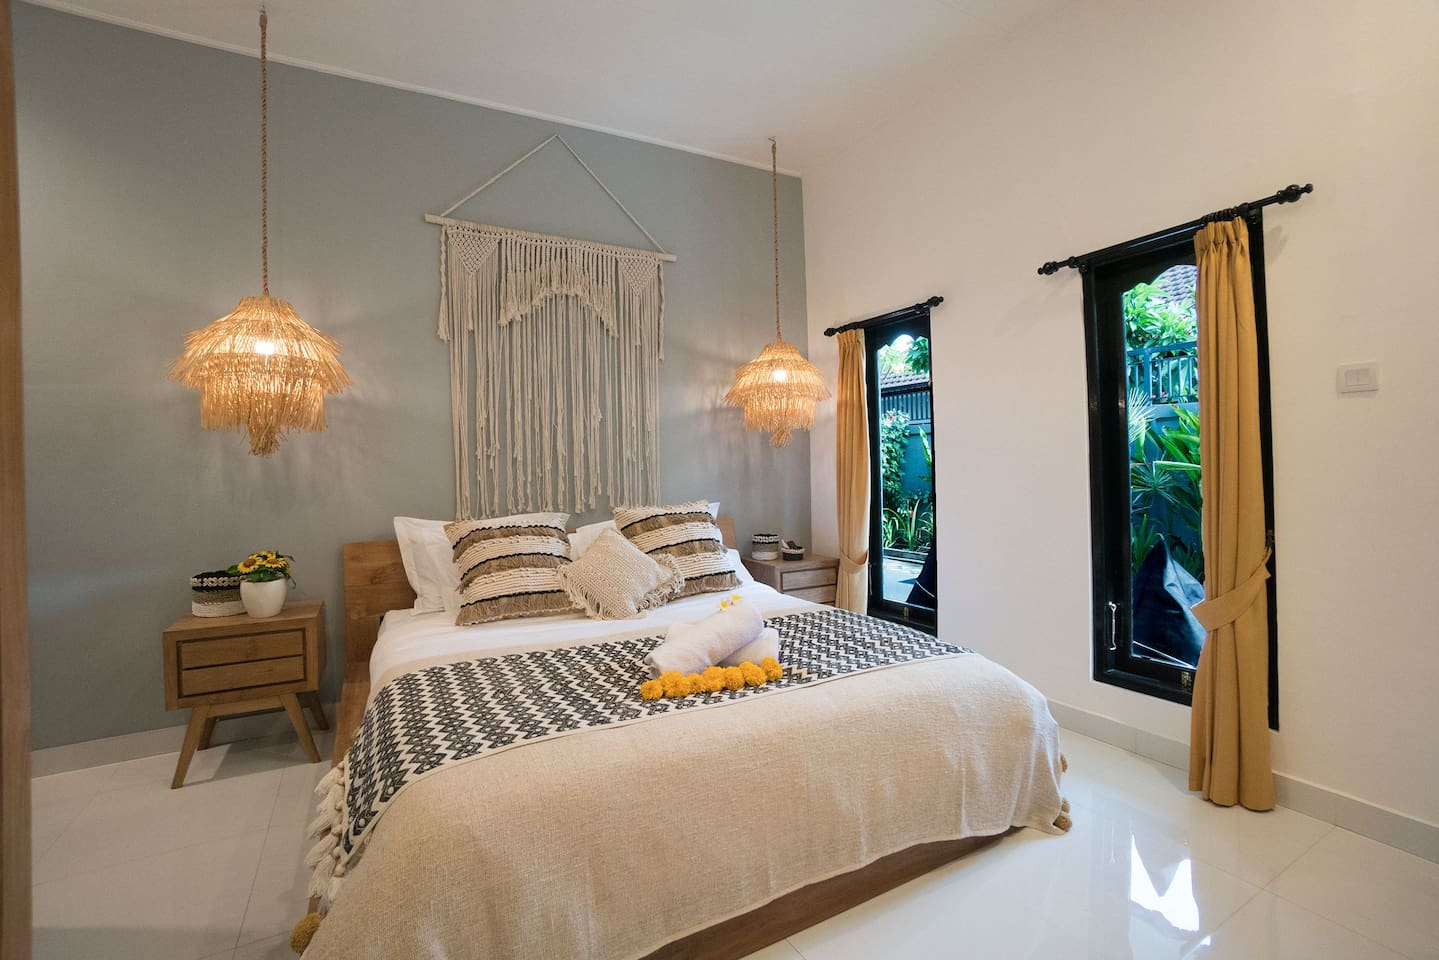 Bedroom #2. In the villa, we are using a high-quality linens, pillows and duvets. Our Japanese cotton linens will ensure a smooth touch on your skin.